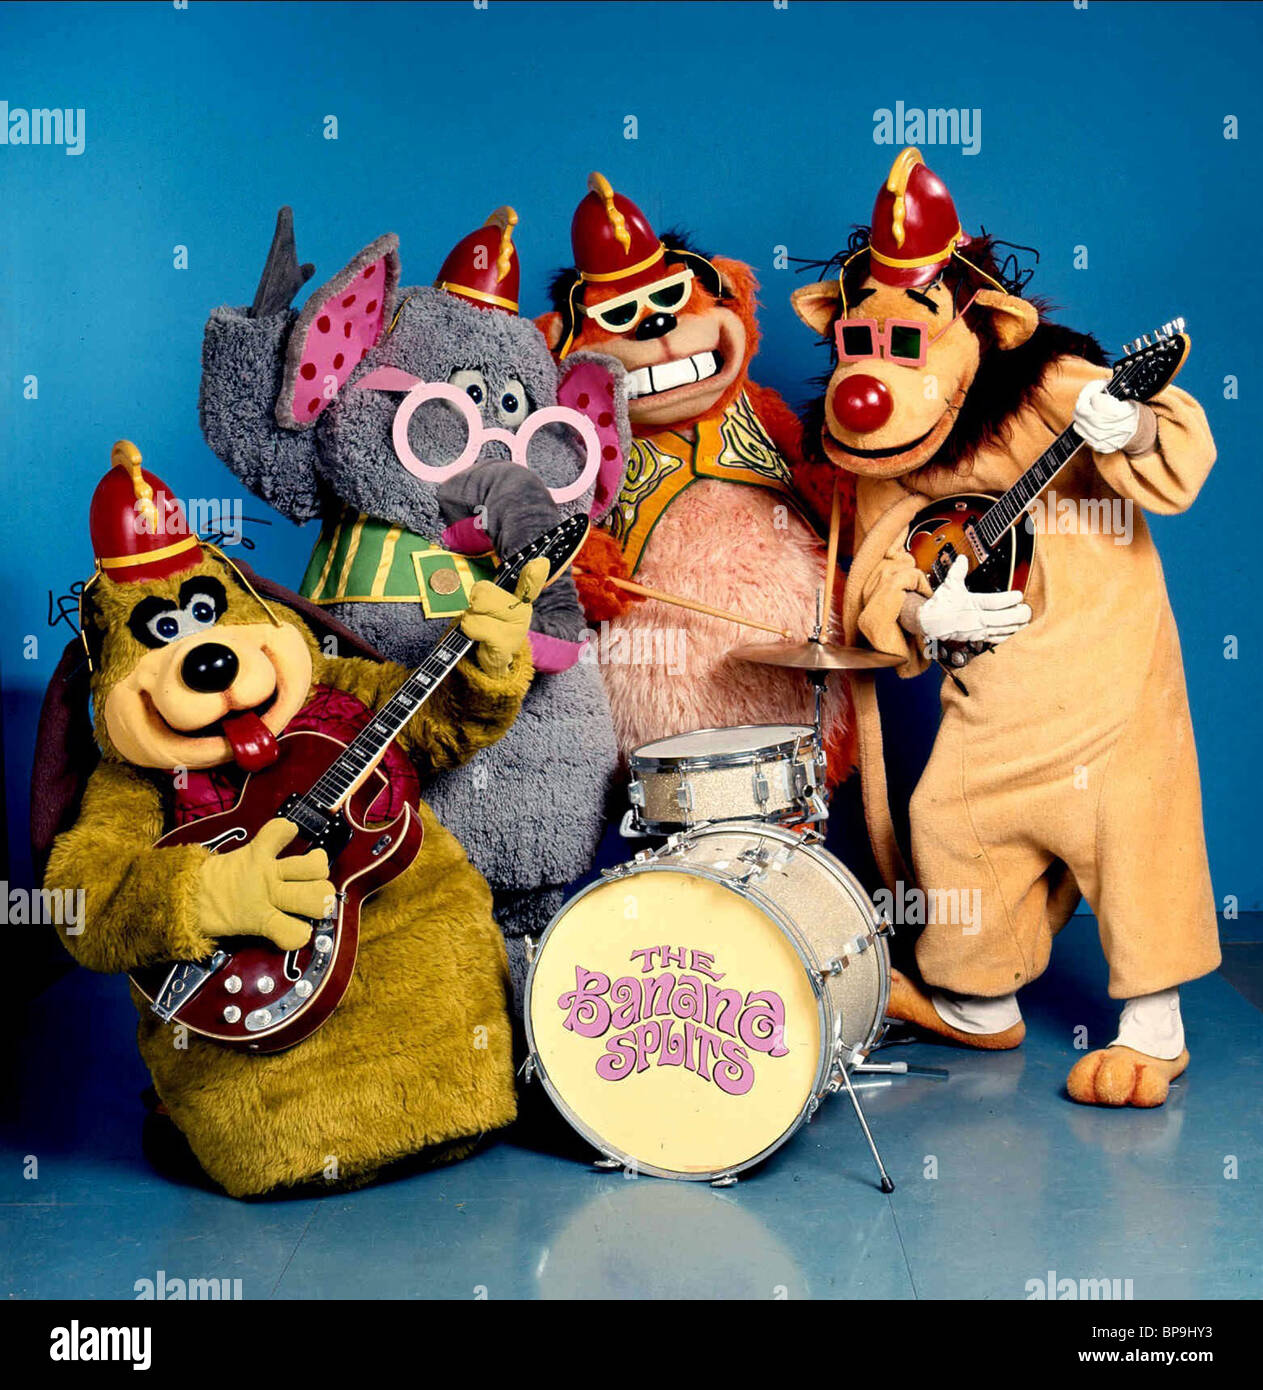 Fleegle Drooper Snorky & Bingo The Banana Splits Adventure Hour ...: moviespictures.org/movie/the_banana_splits_adventure_hour_1968